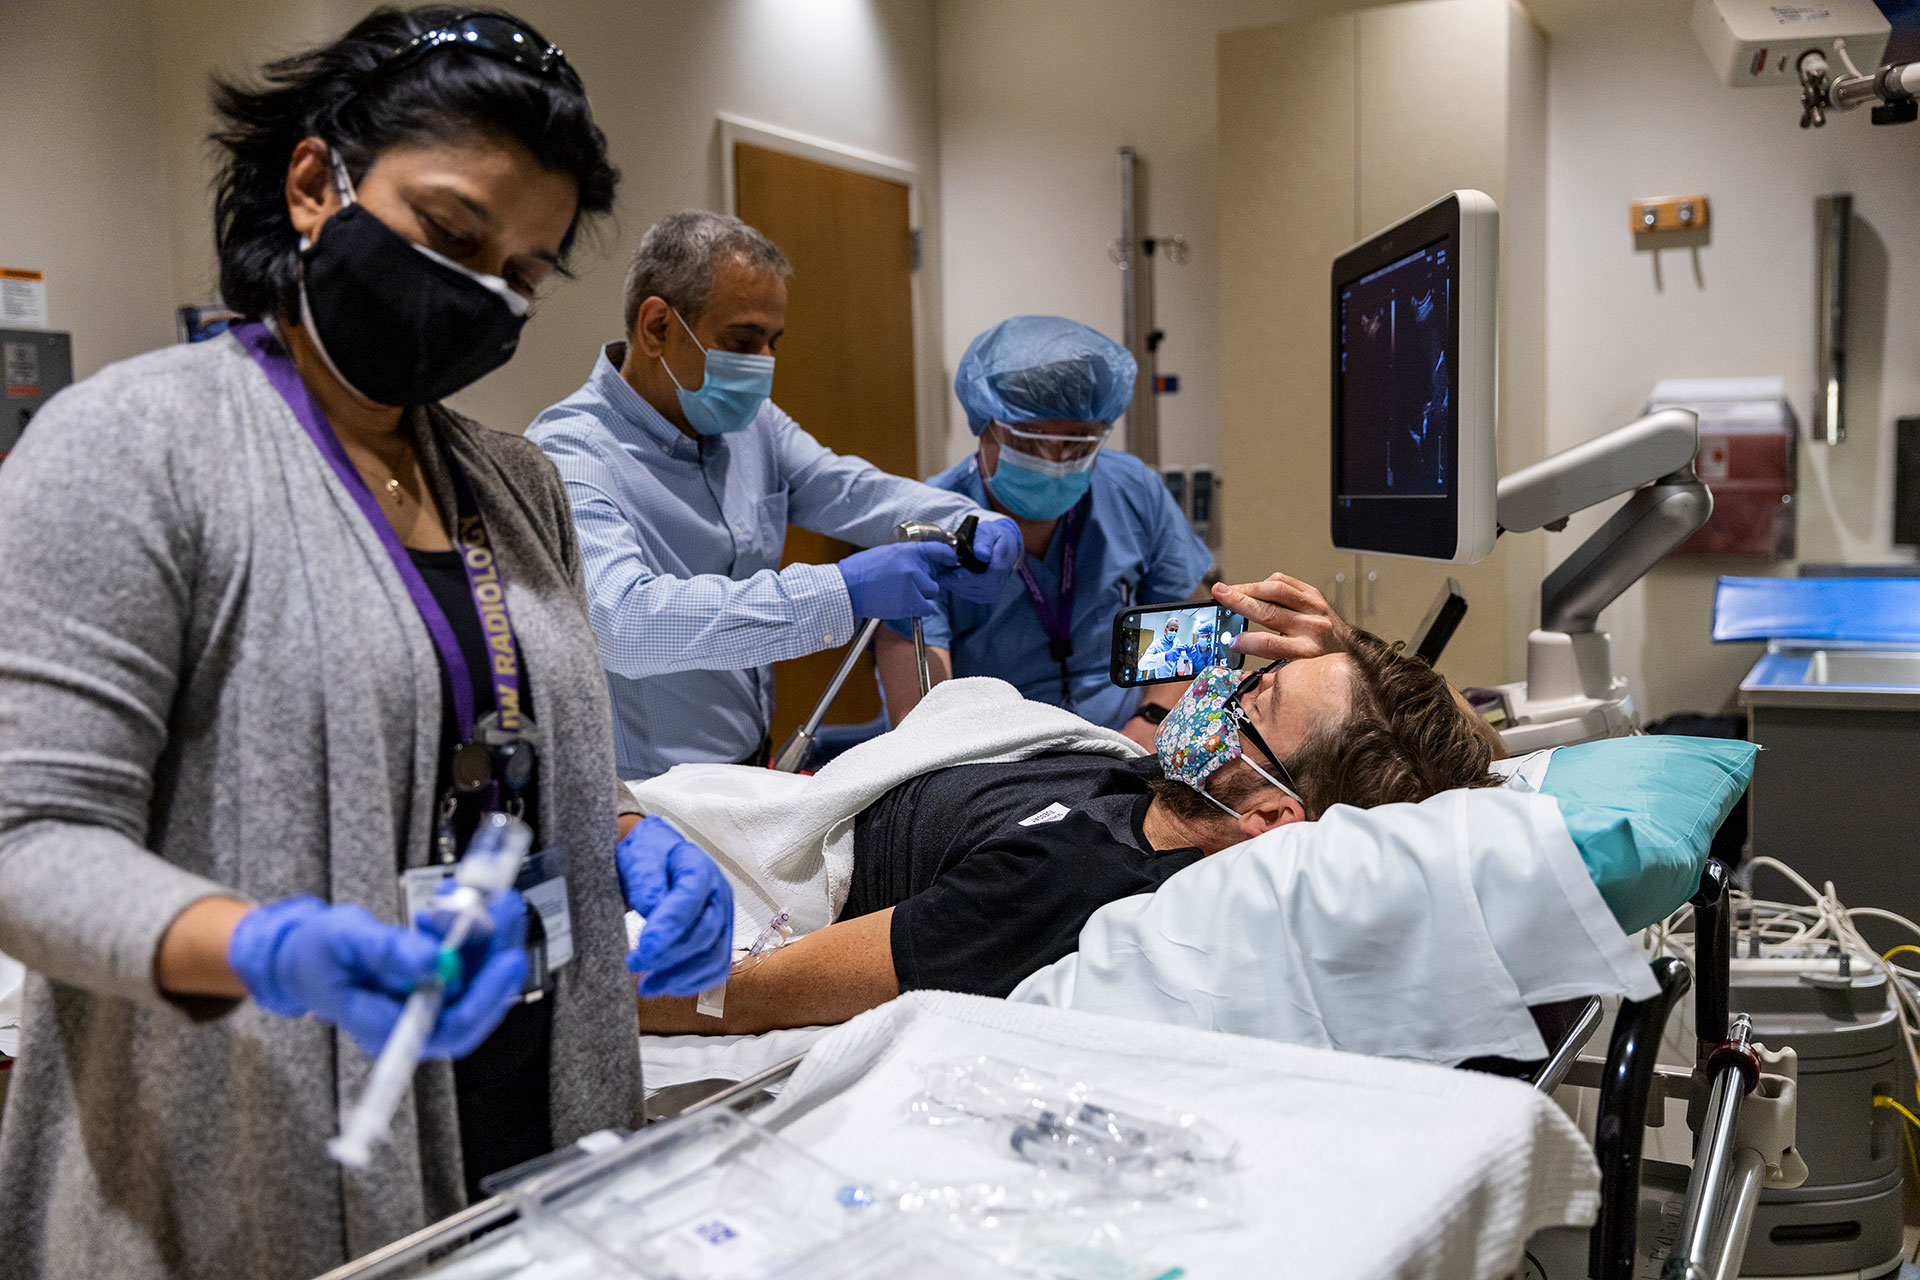 researchers and medical professionals preparing for the ultrasound scan